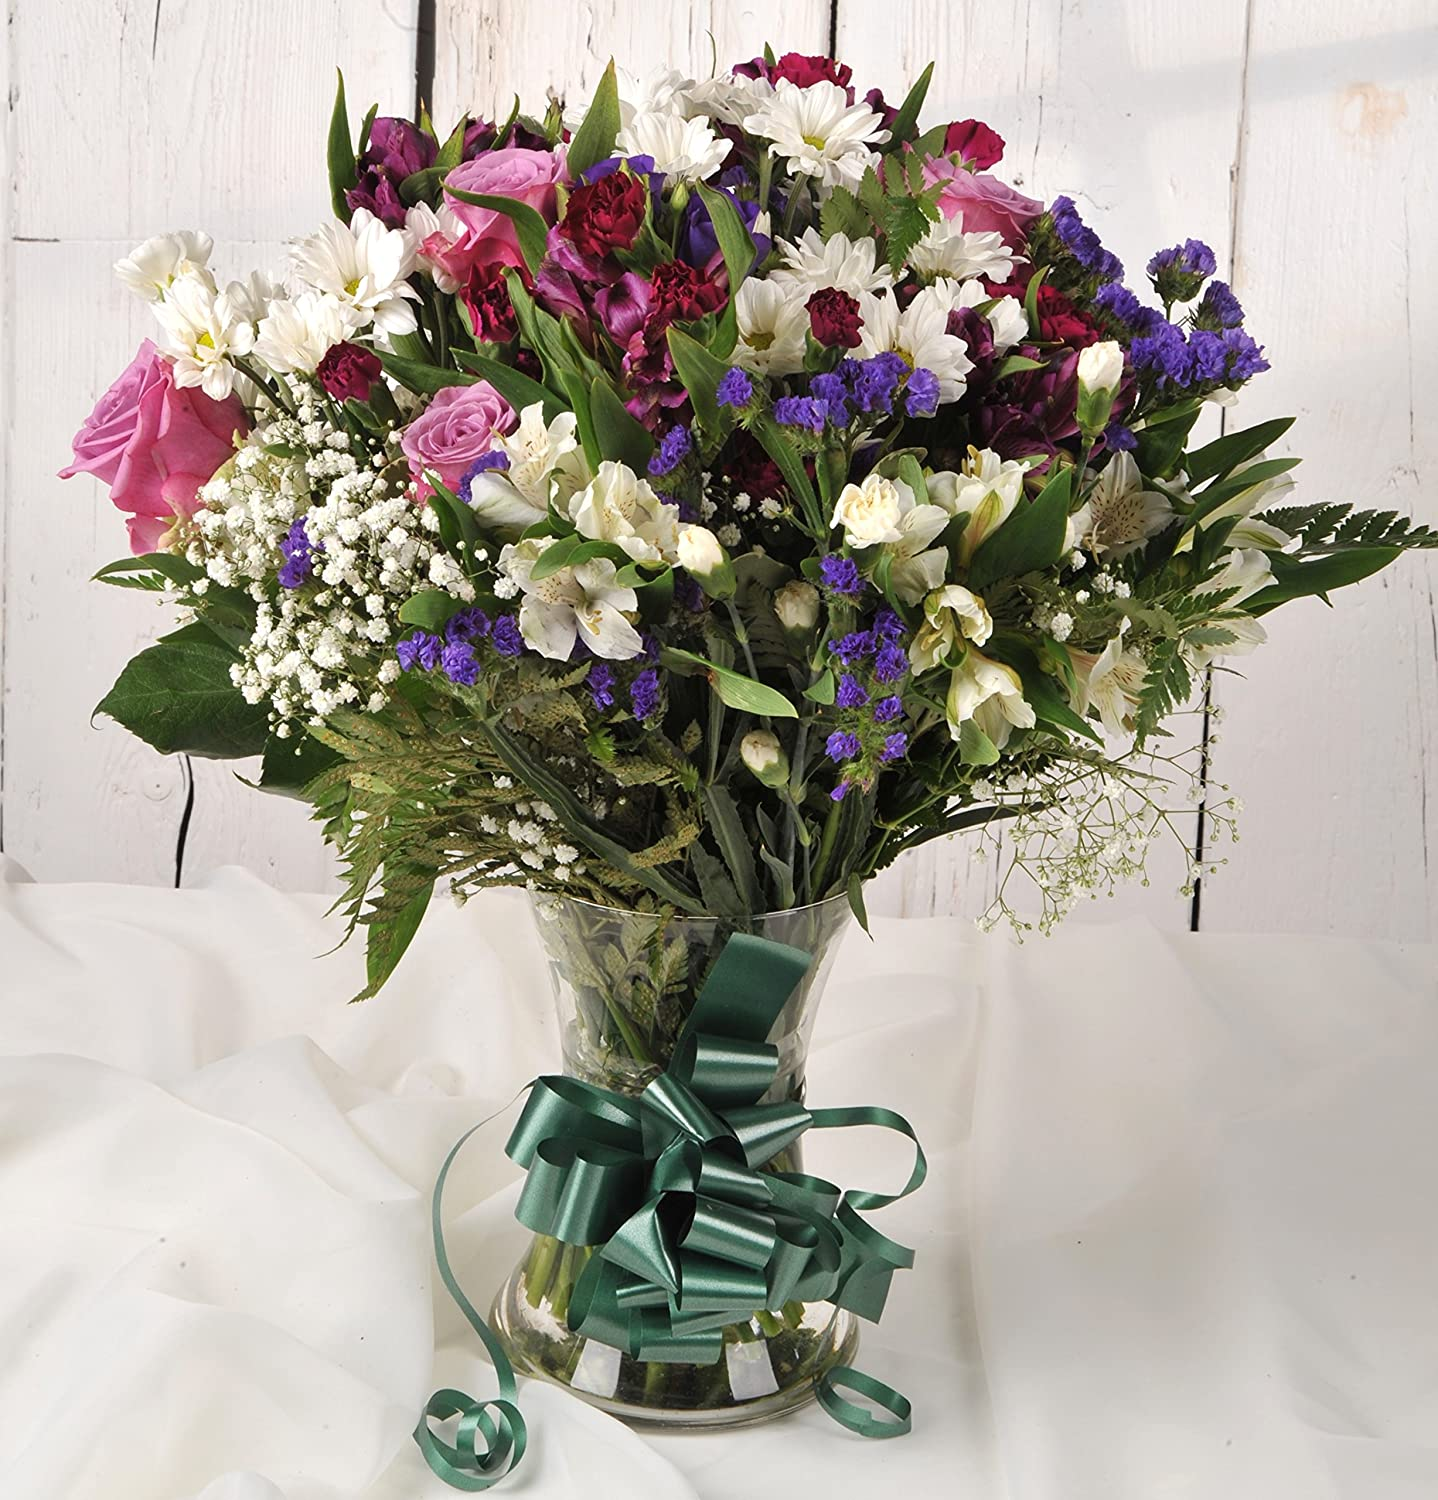 Sympathy Bereavement Or Condolence Flowers Delivered Lilac